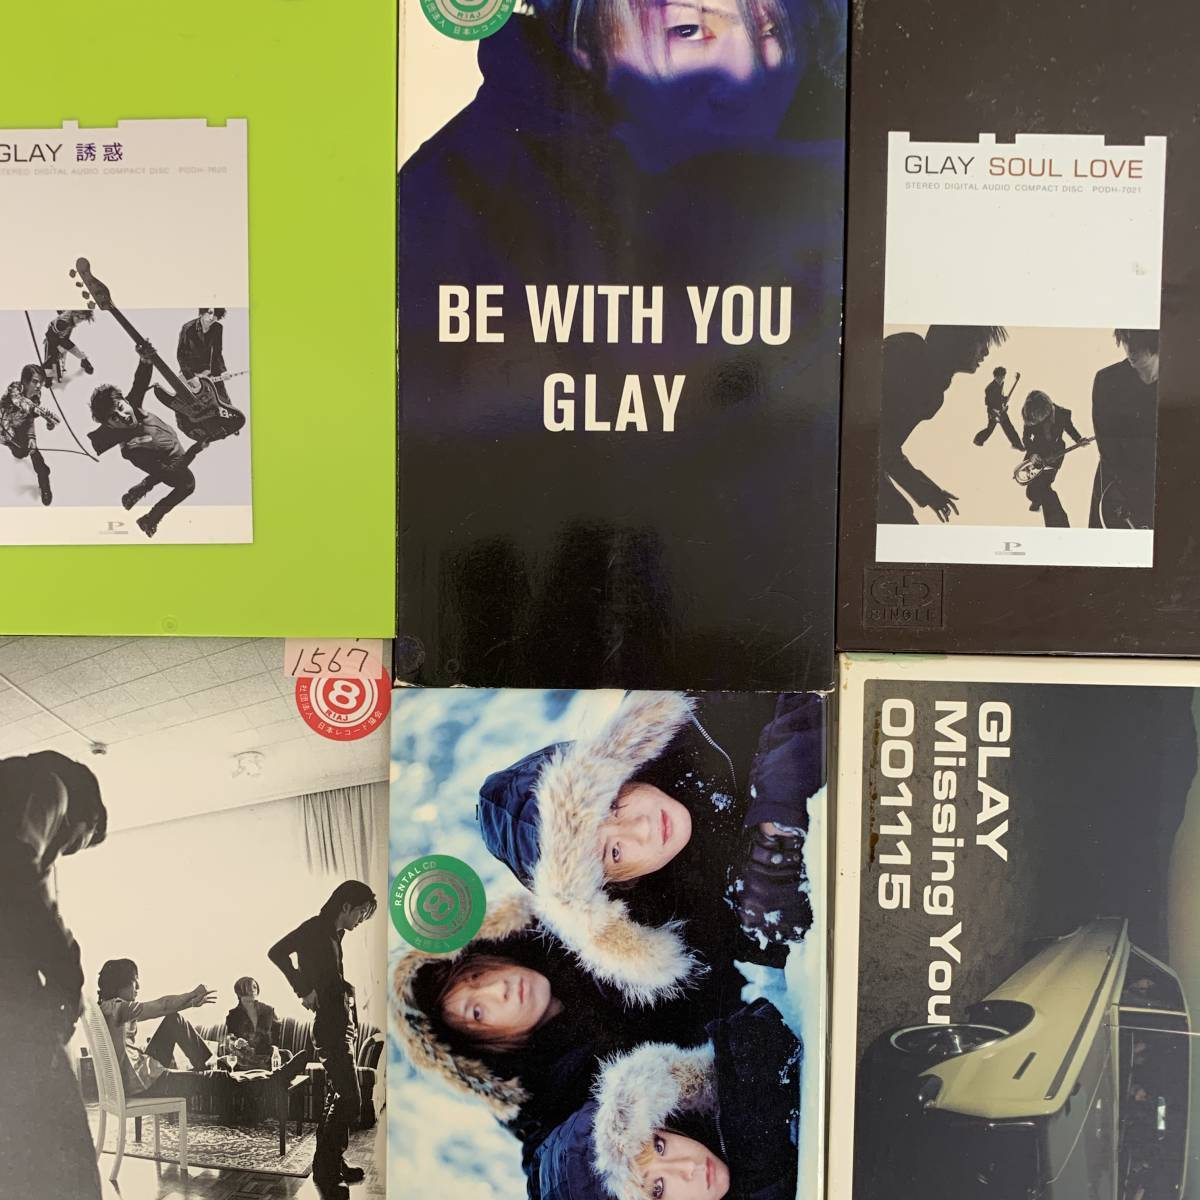 GLAY 口唇、REVIEW、Missing You、Soul Love、誘惑、a Boy、Winter,again、Be with You、However、9枚まとめて_画像5